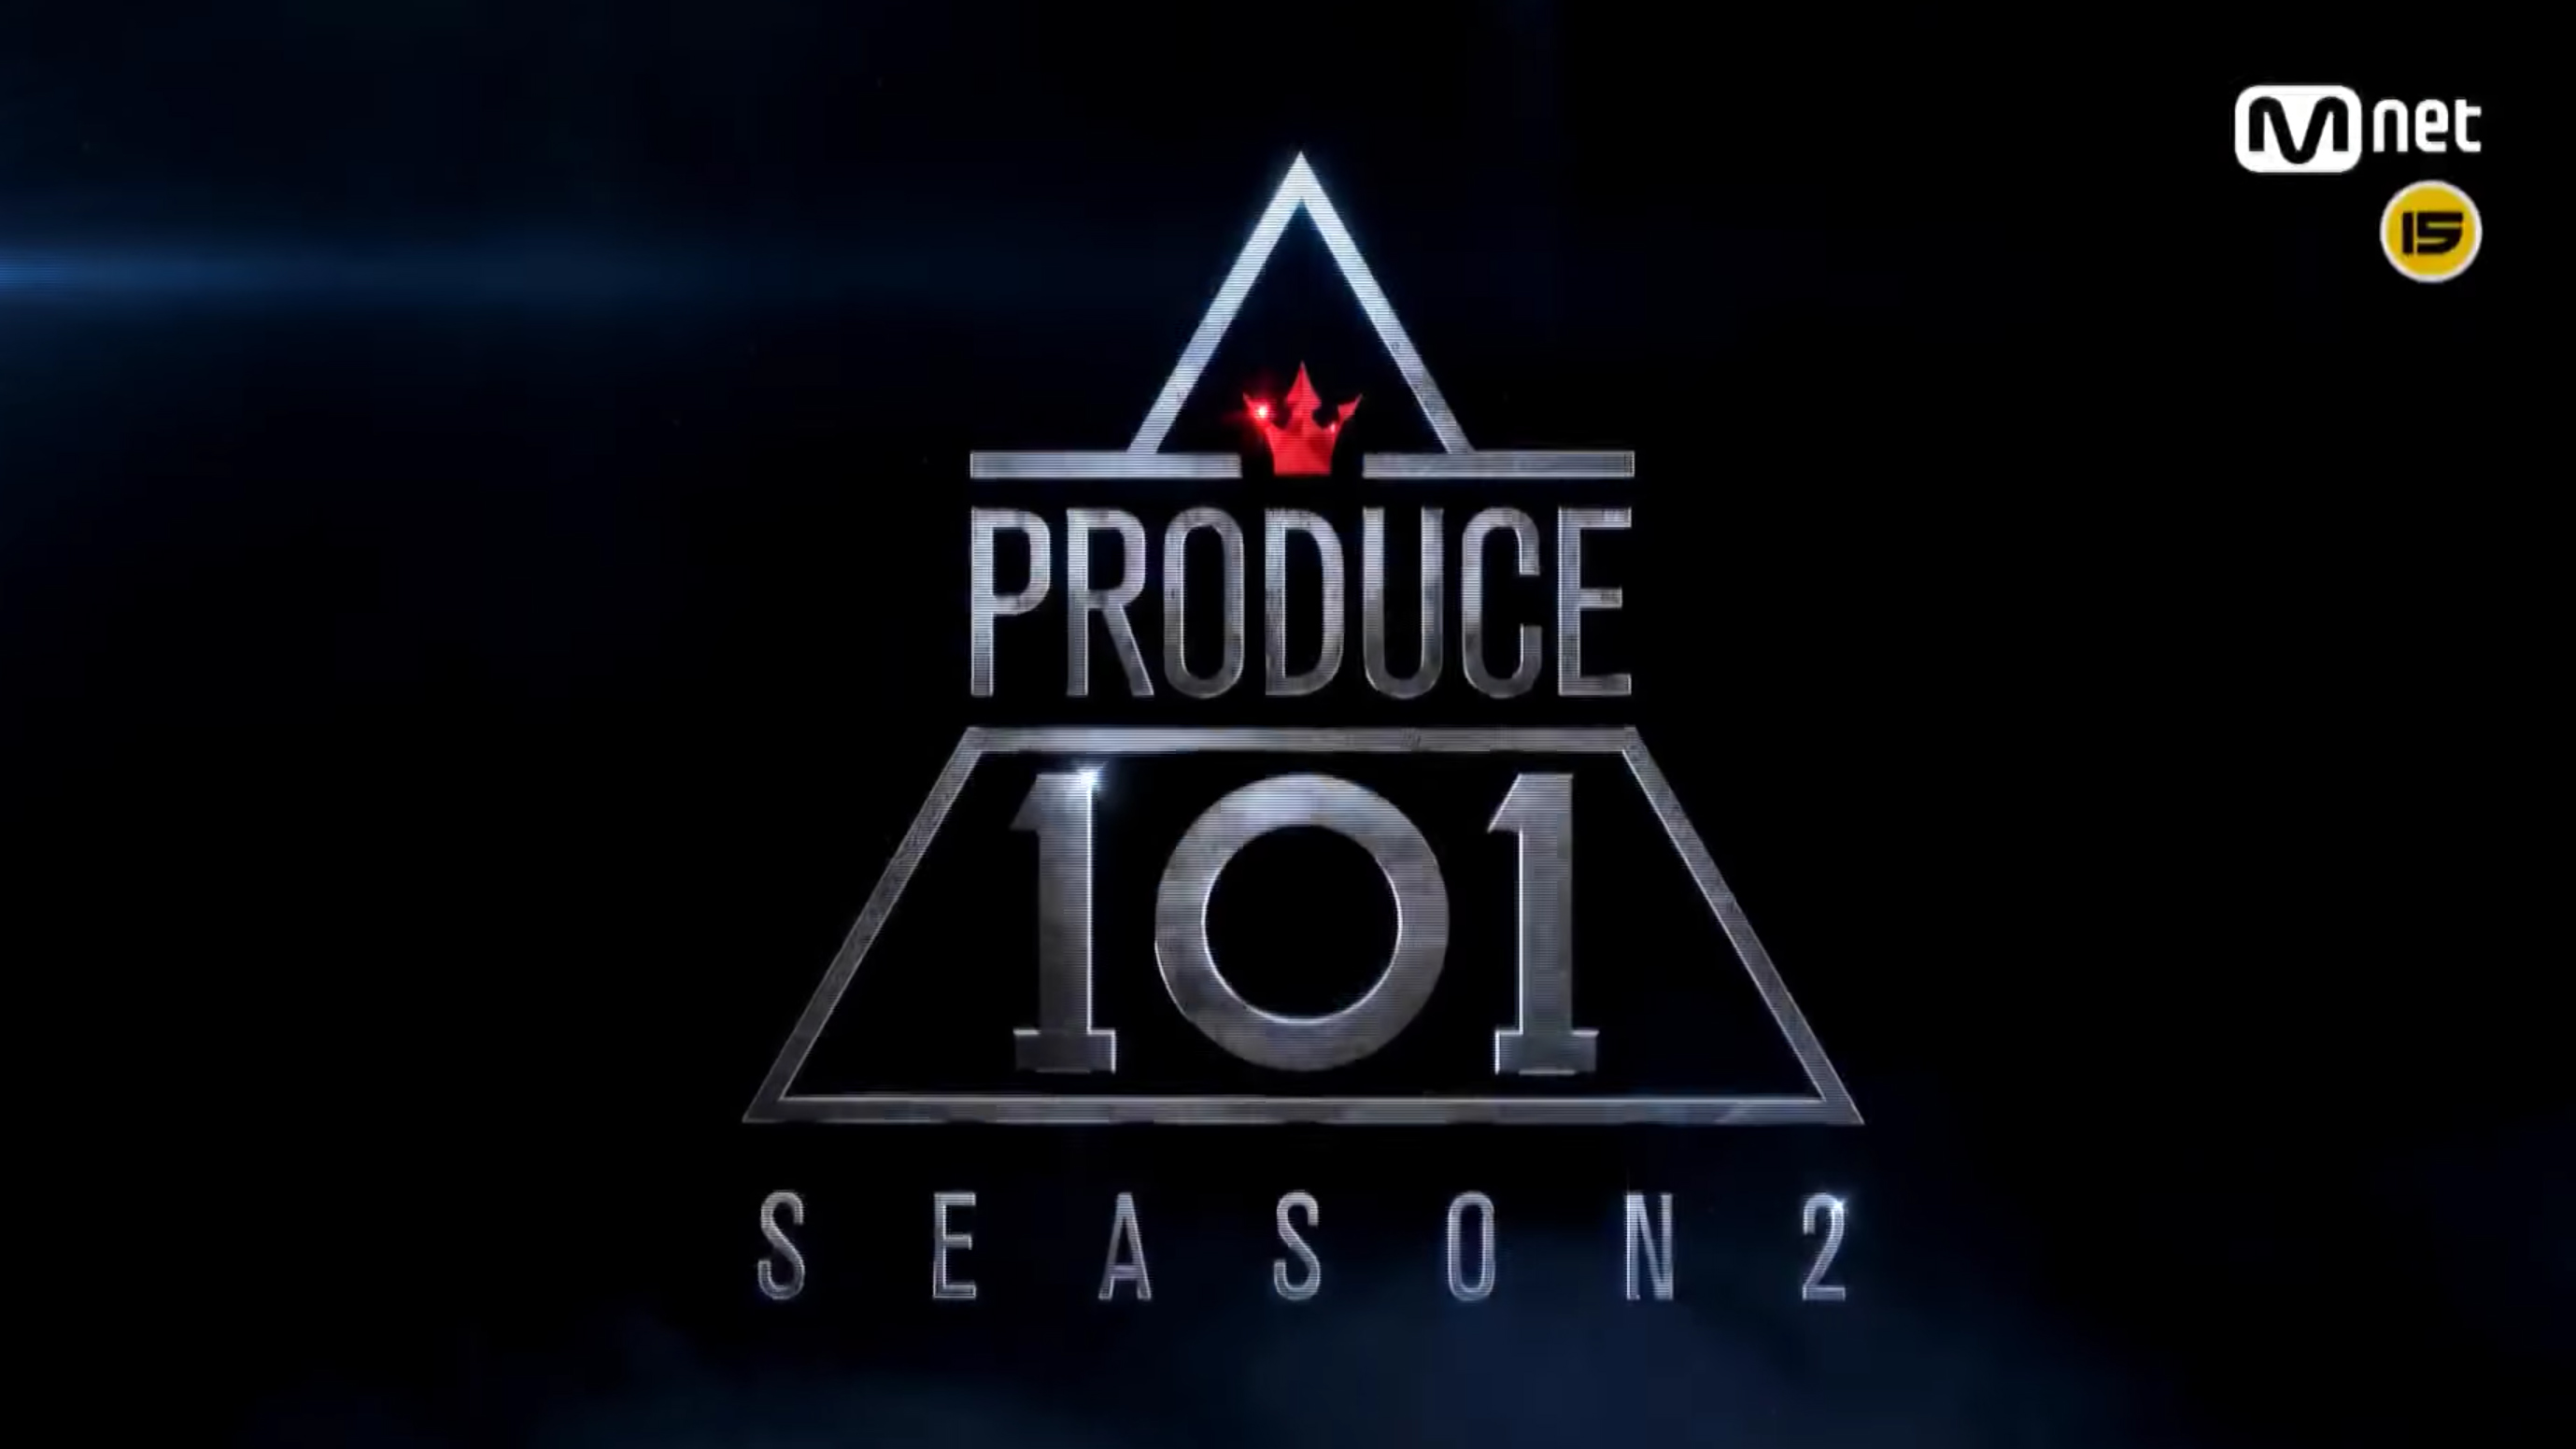 """Produce 101"" To Release Profiles Of Season 2 Contestants"